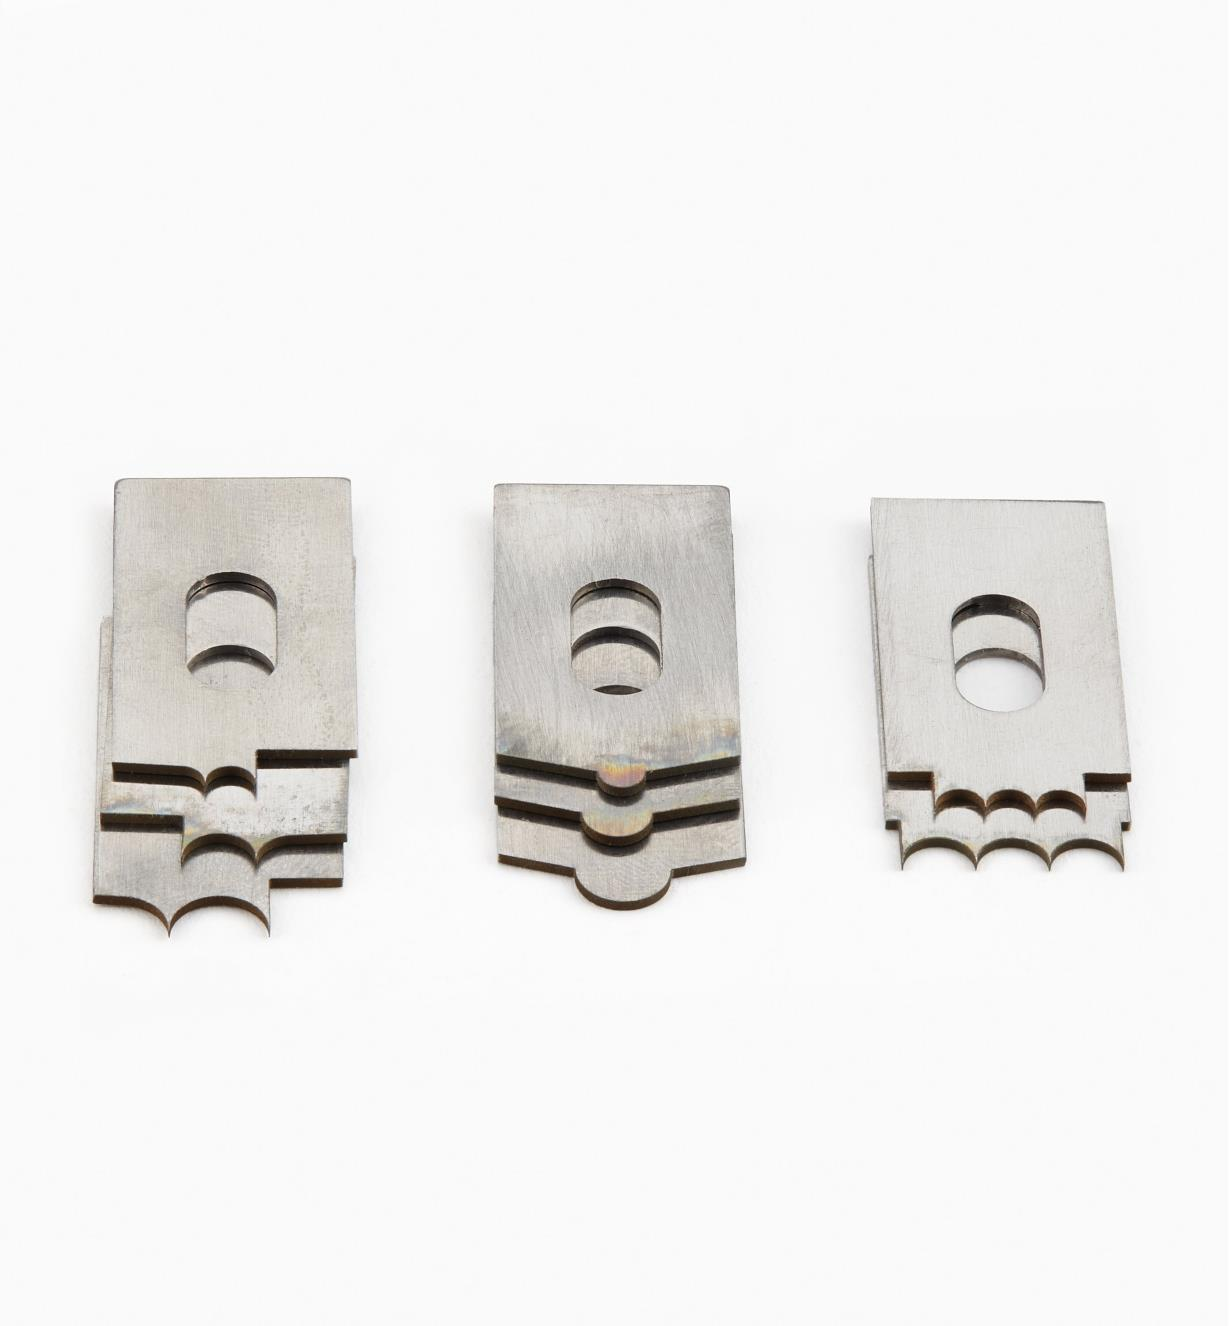 05P0410 - Master Set of 8 Cutters